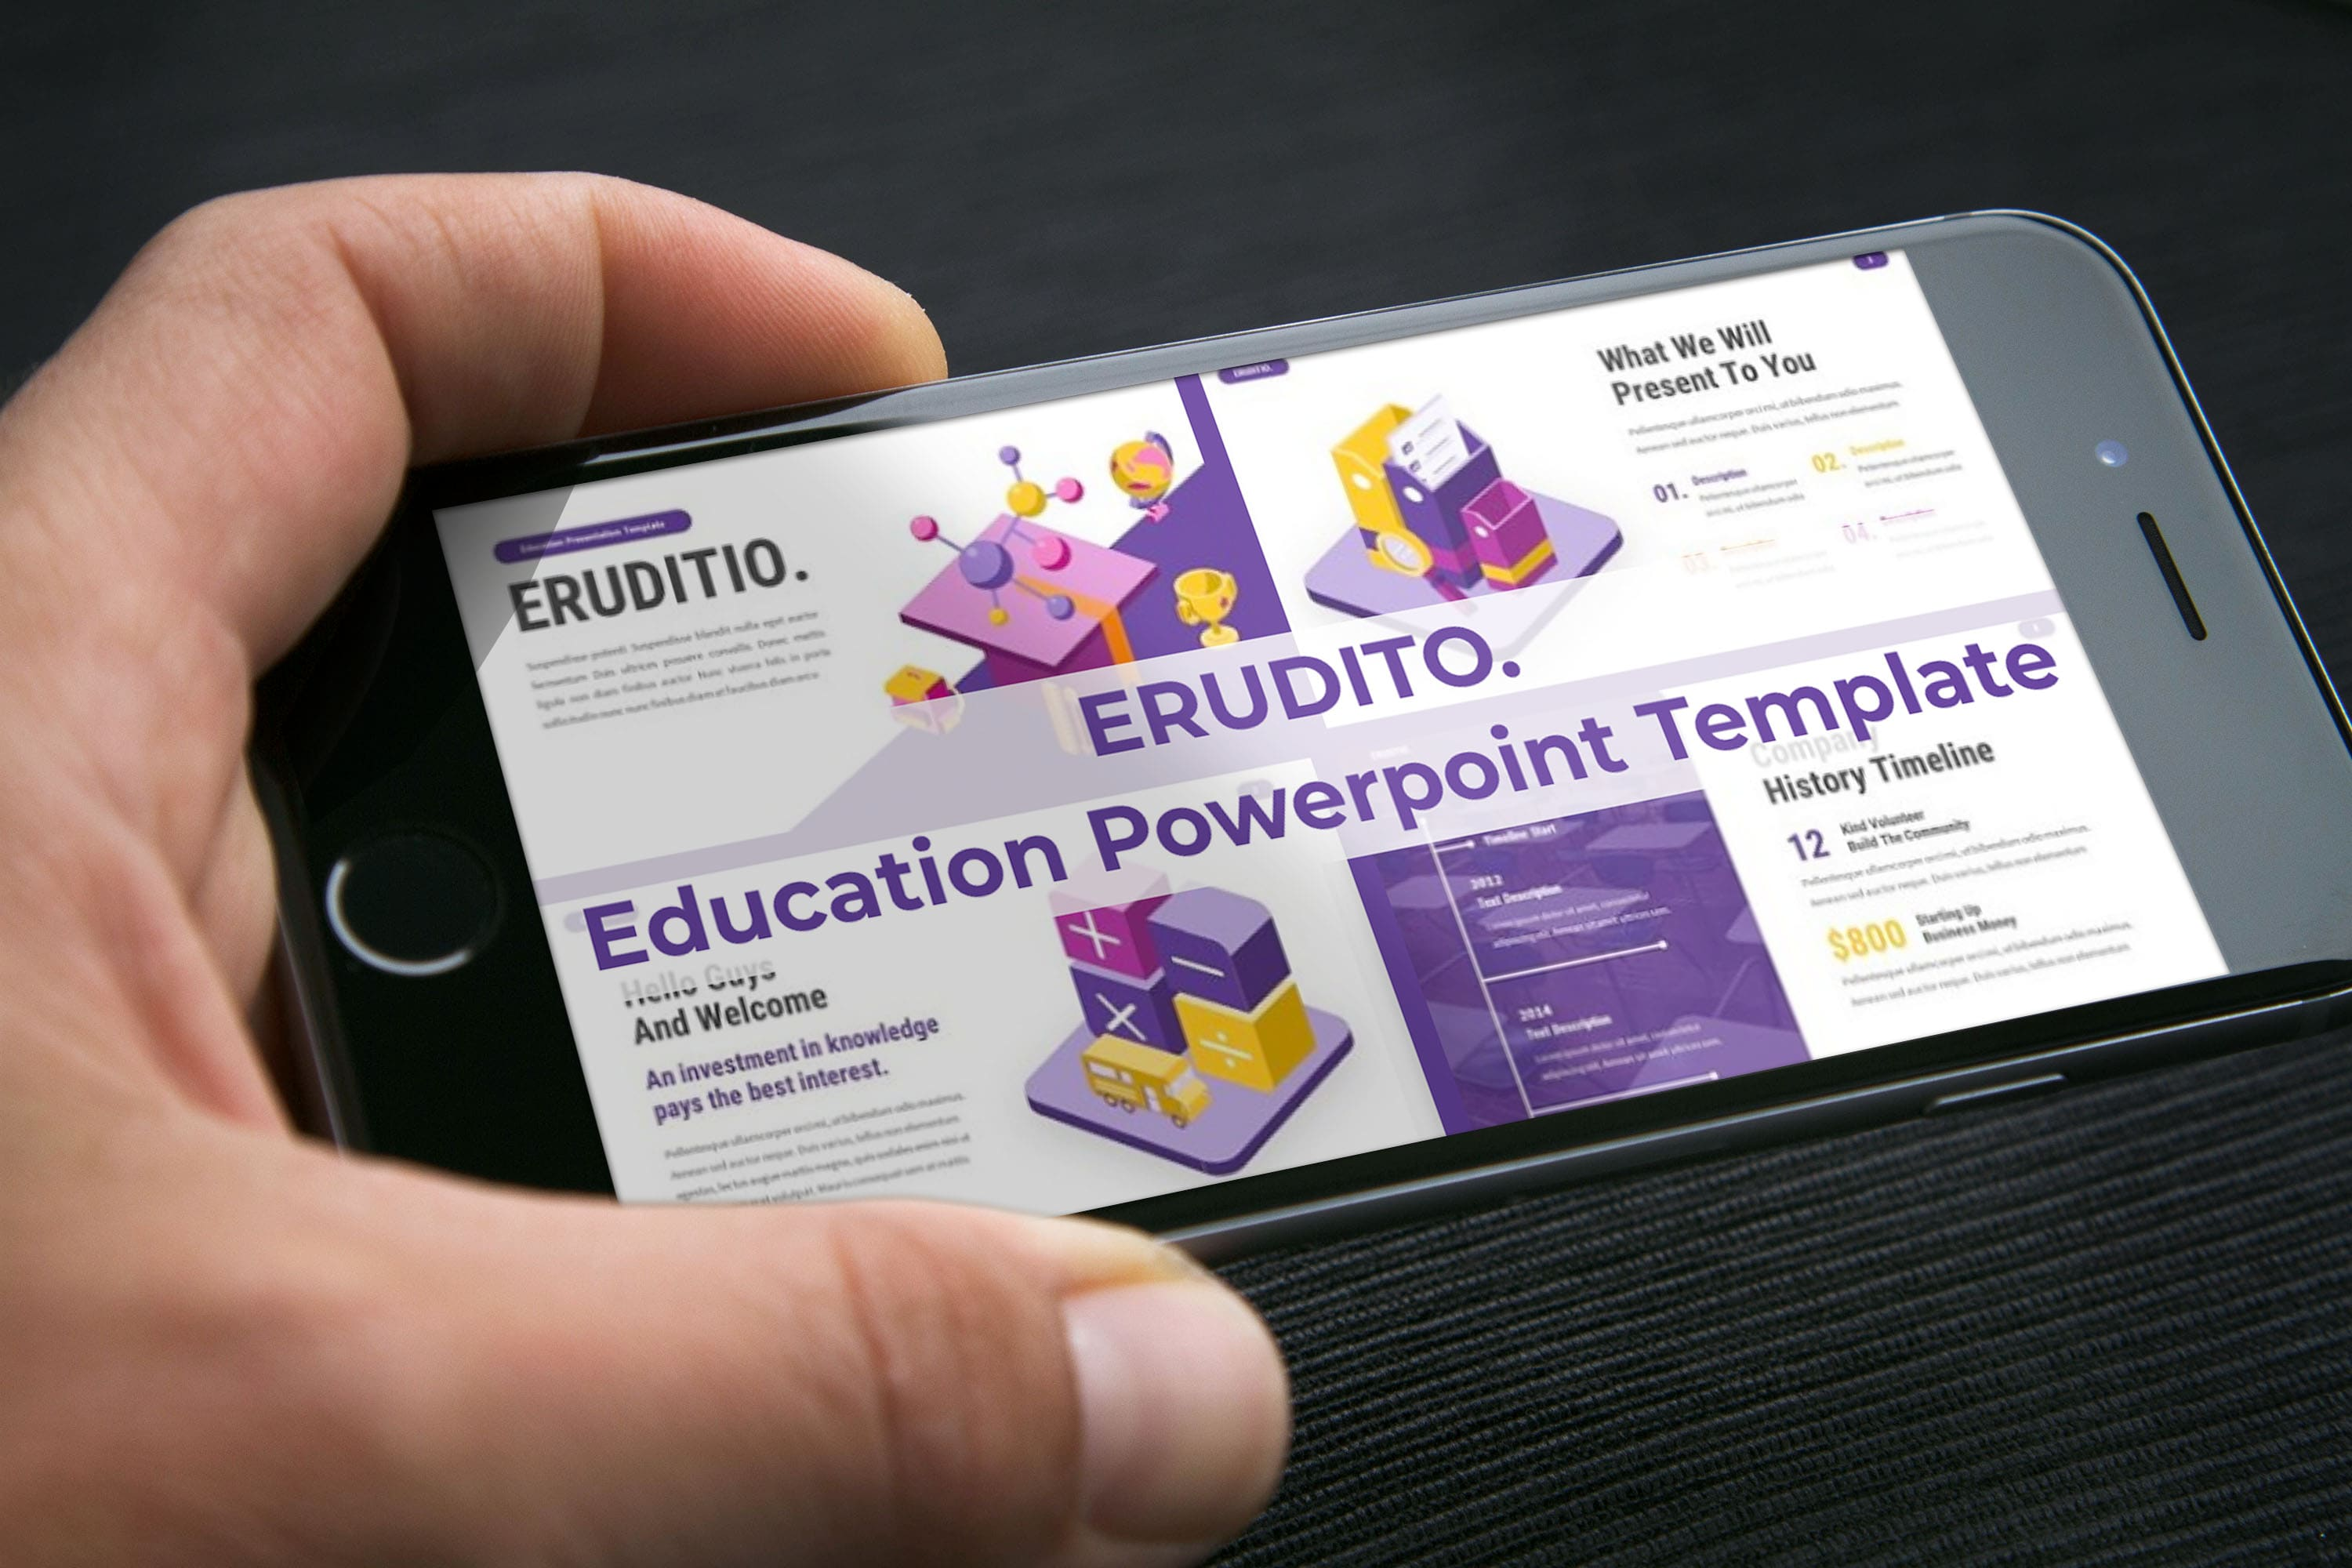 Mobile option of Eruditio - Education Powerpoint Template.